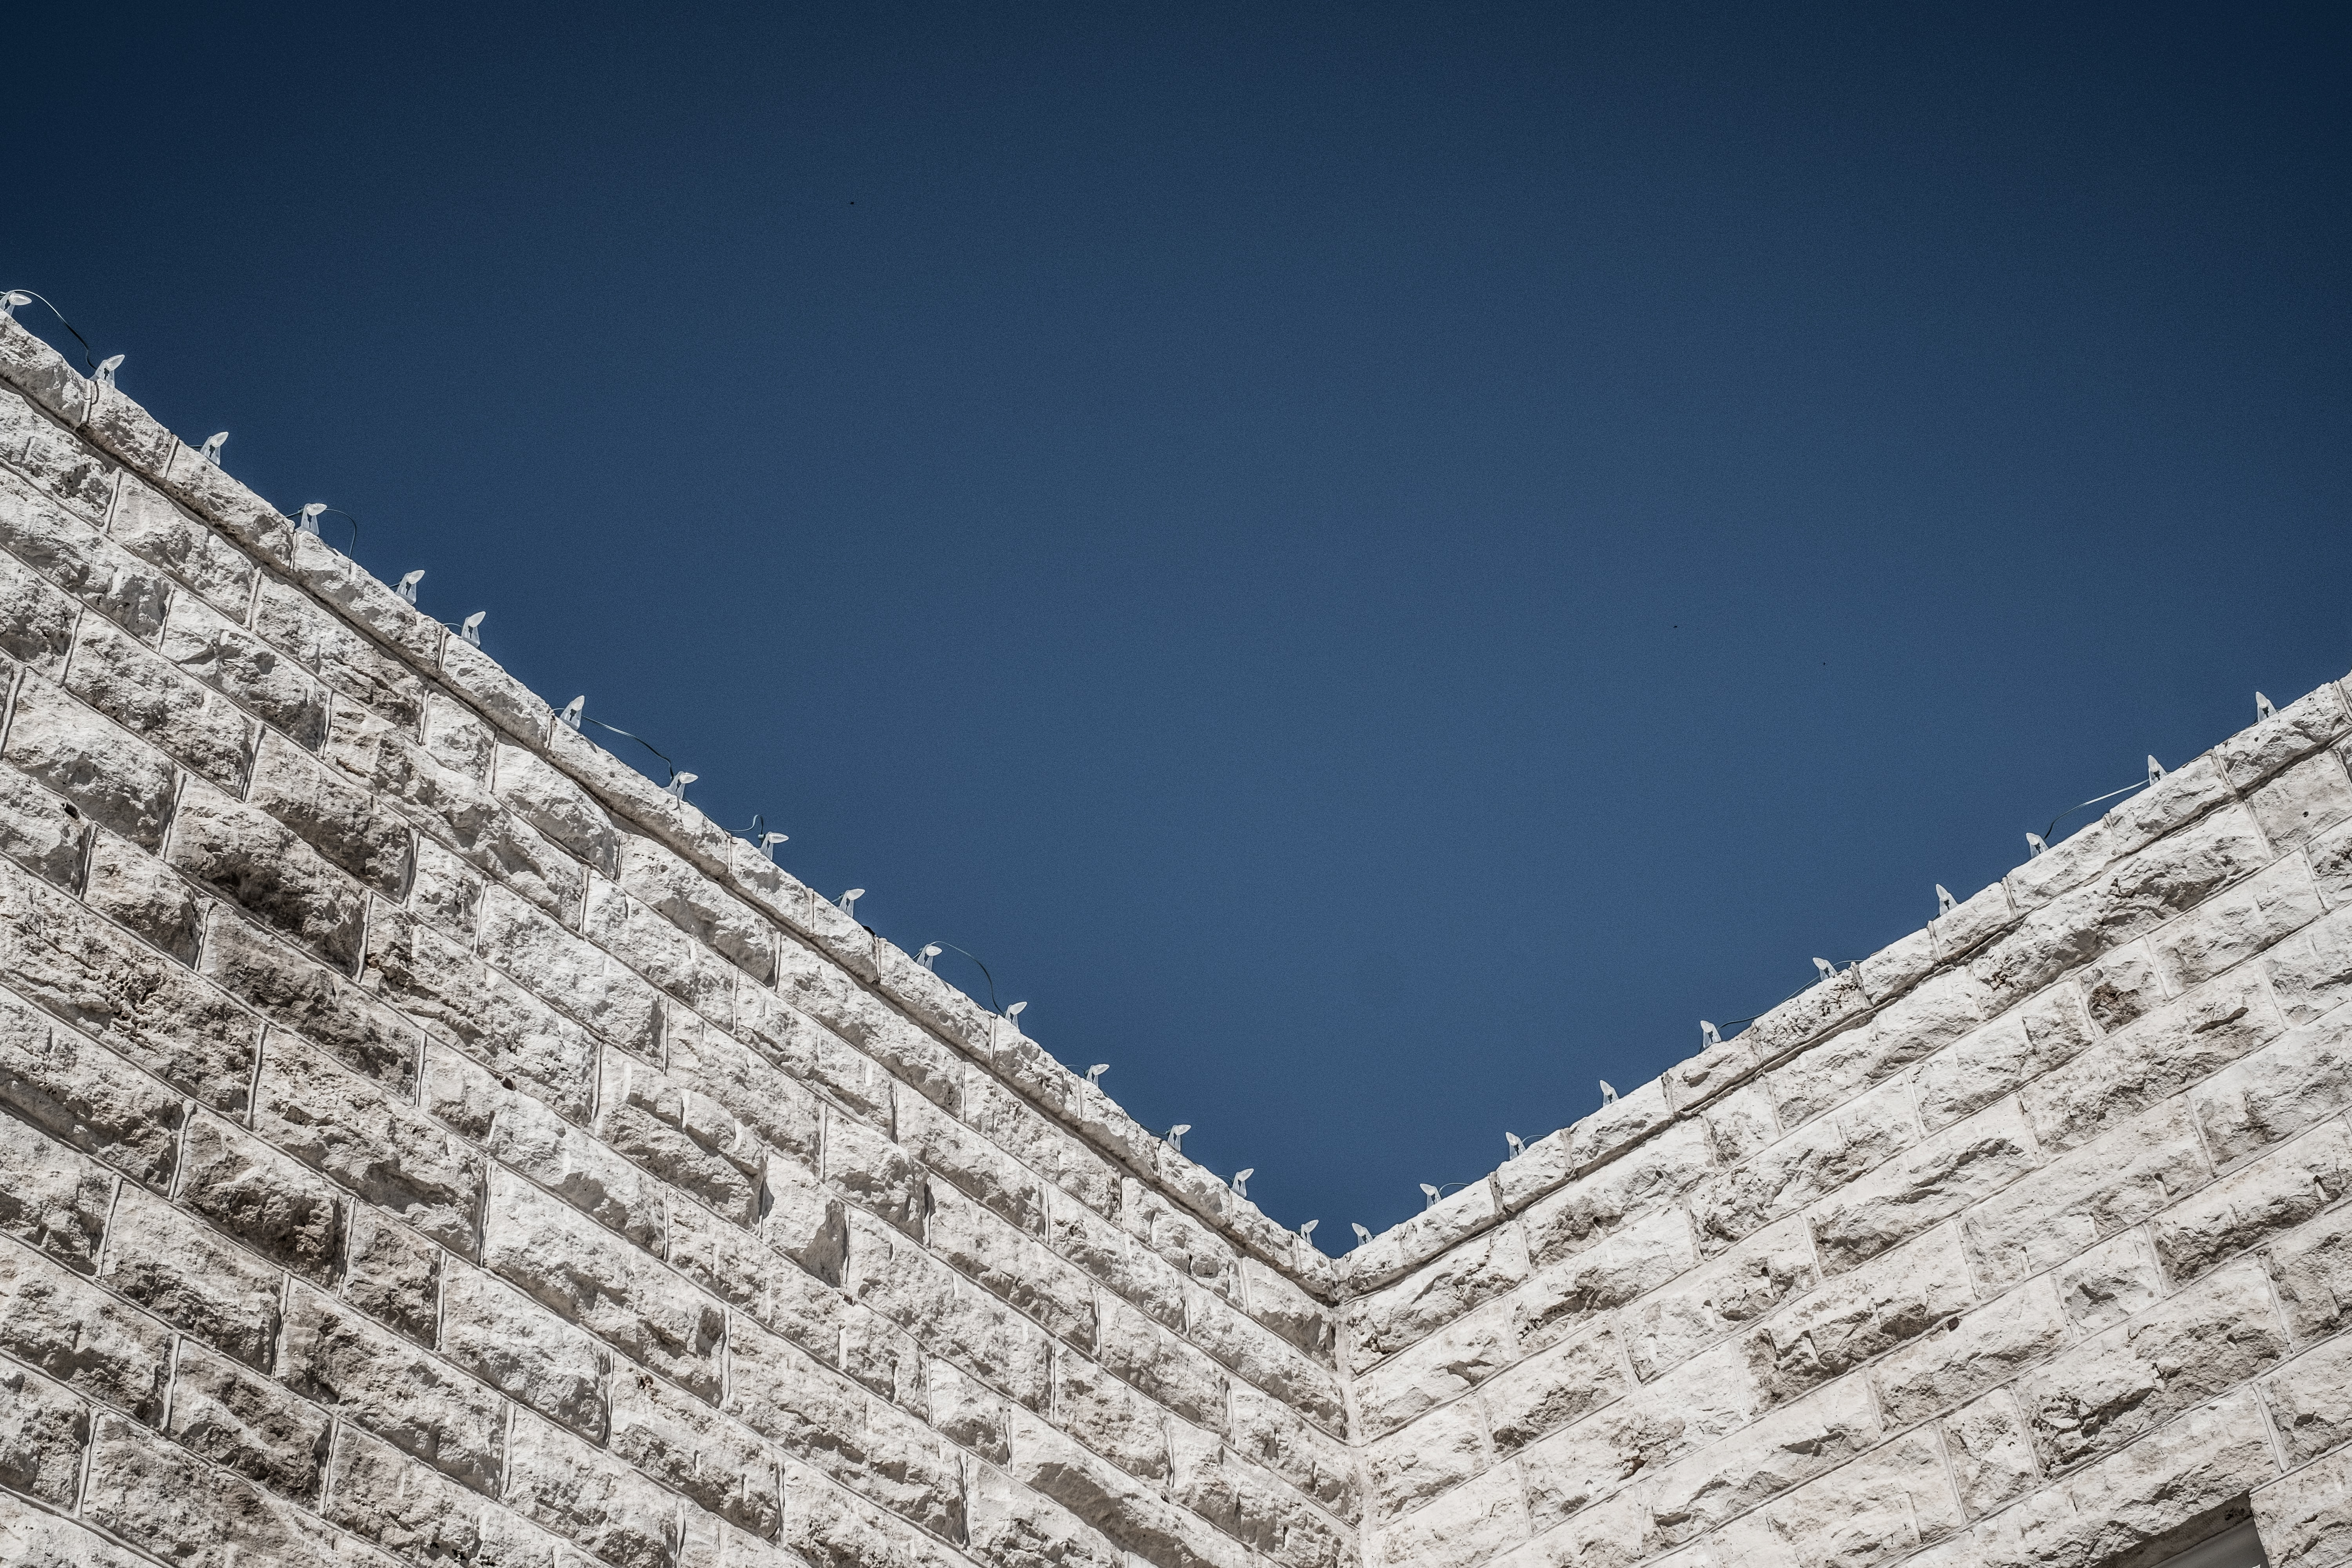 low angle photography of gray concrete wall at daytime